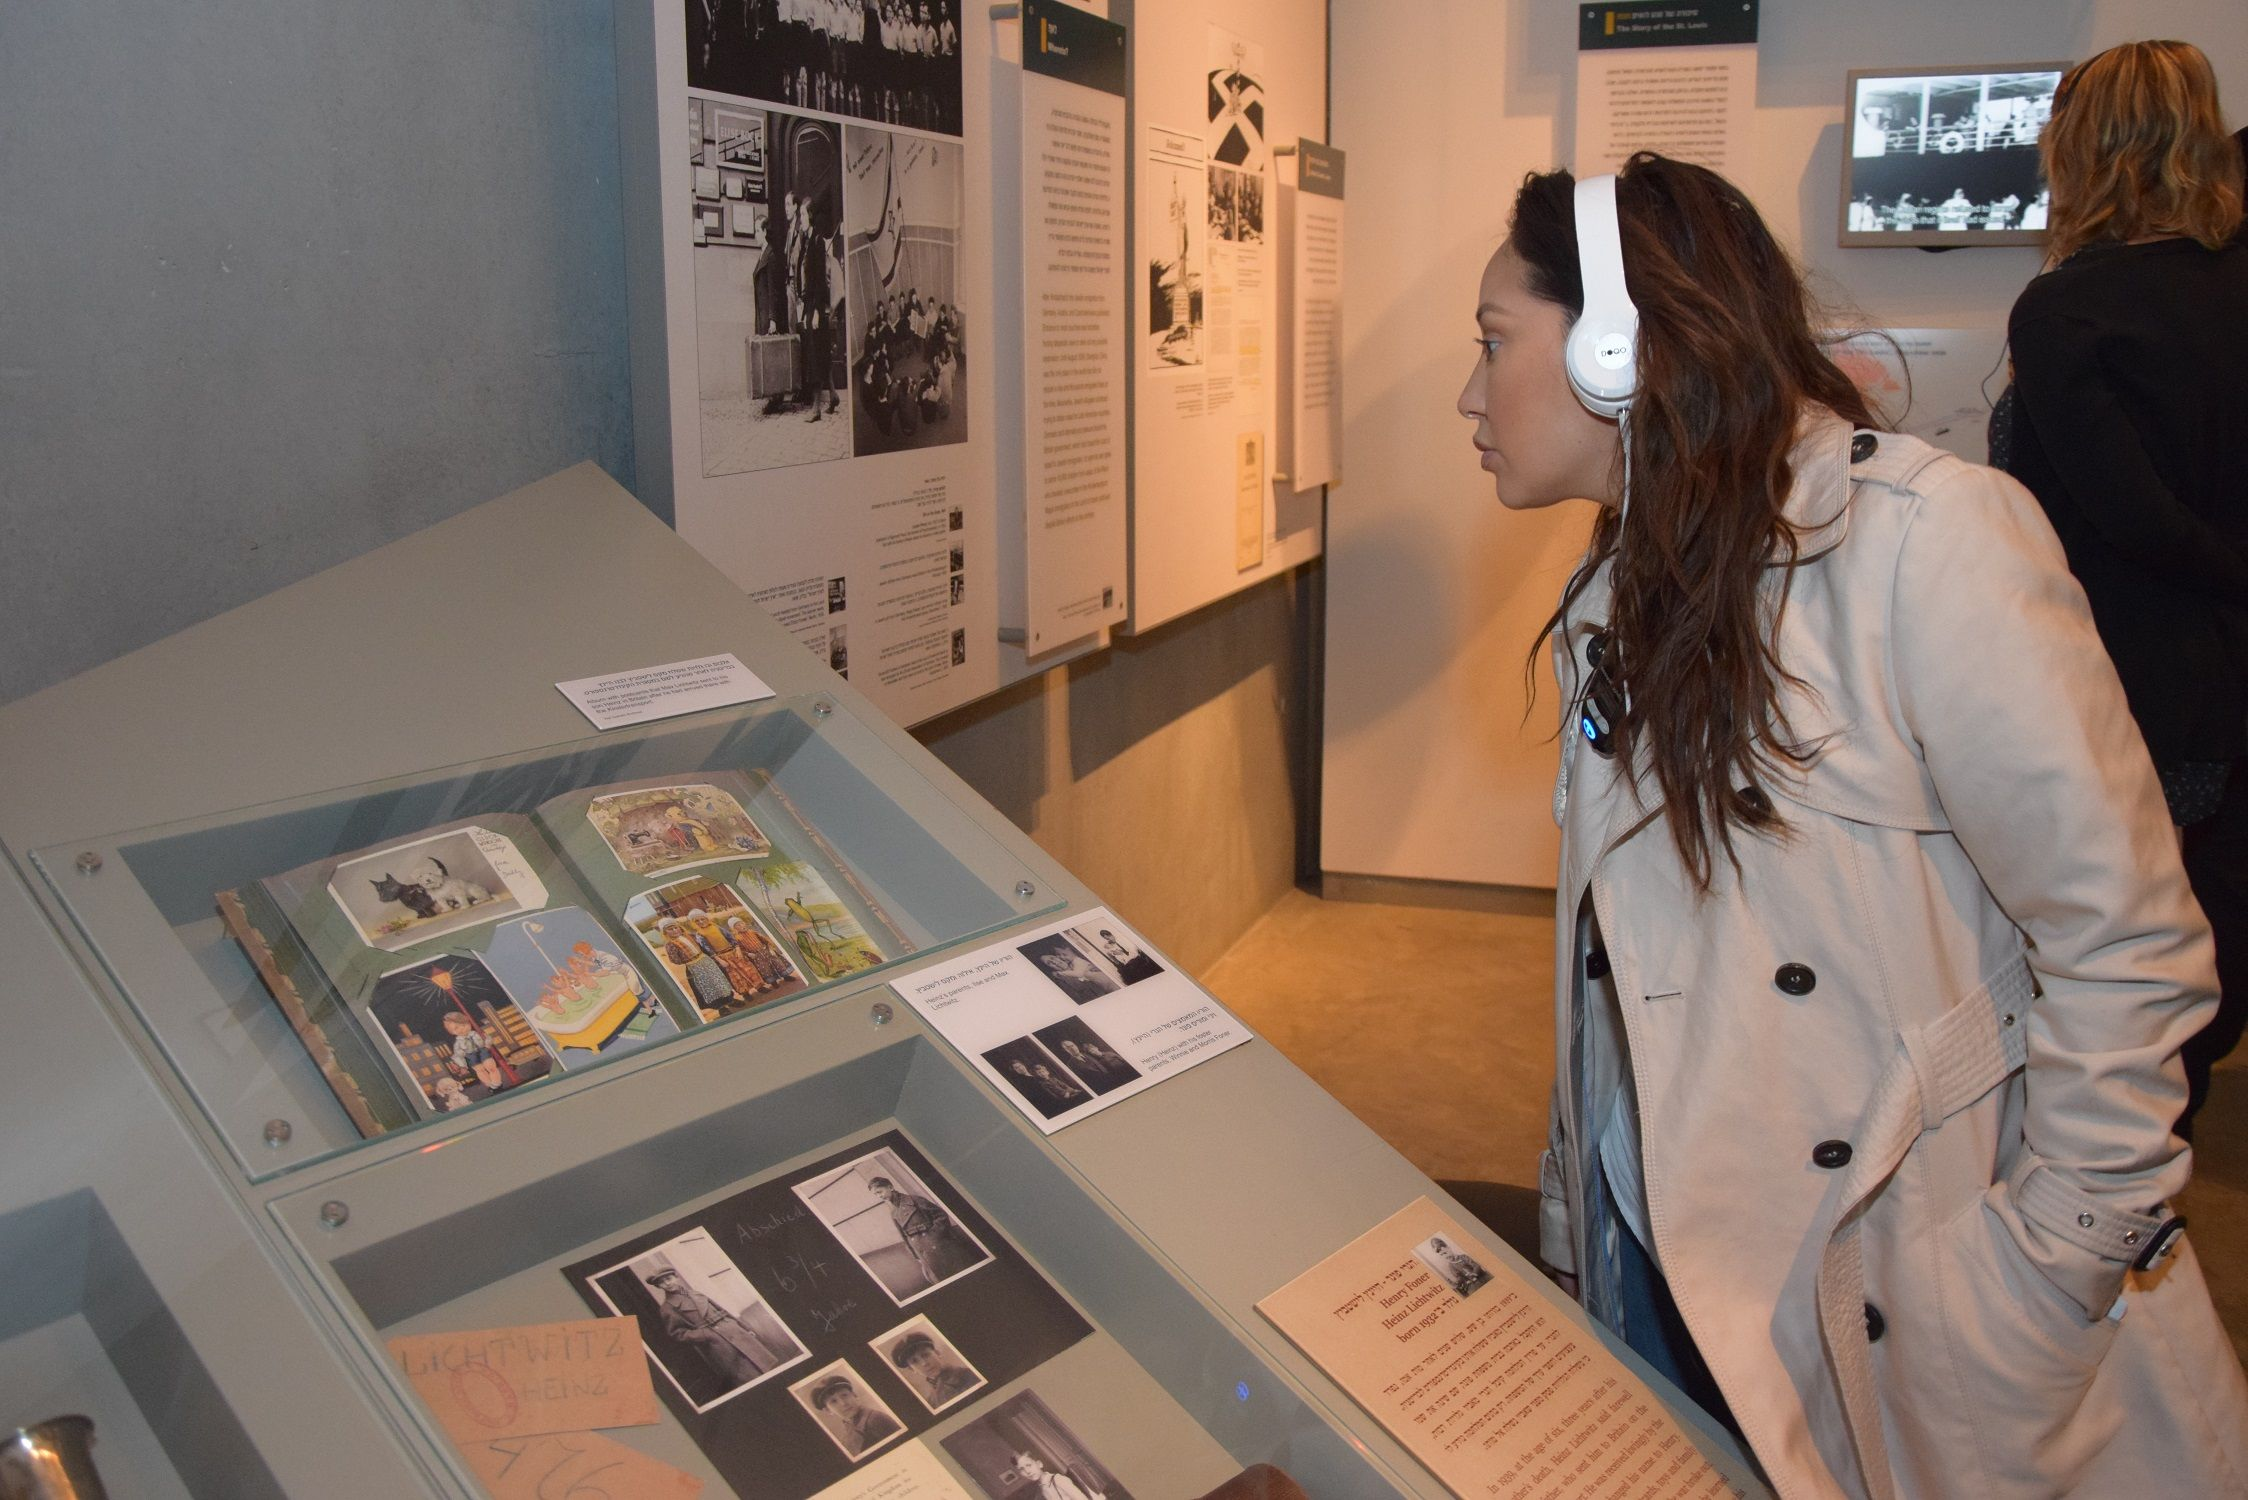 Singer and songwriter Adrienne Bailon explores an exhibit about the Kindertransport during a recent visit to Yad Vashem